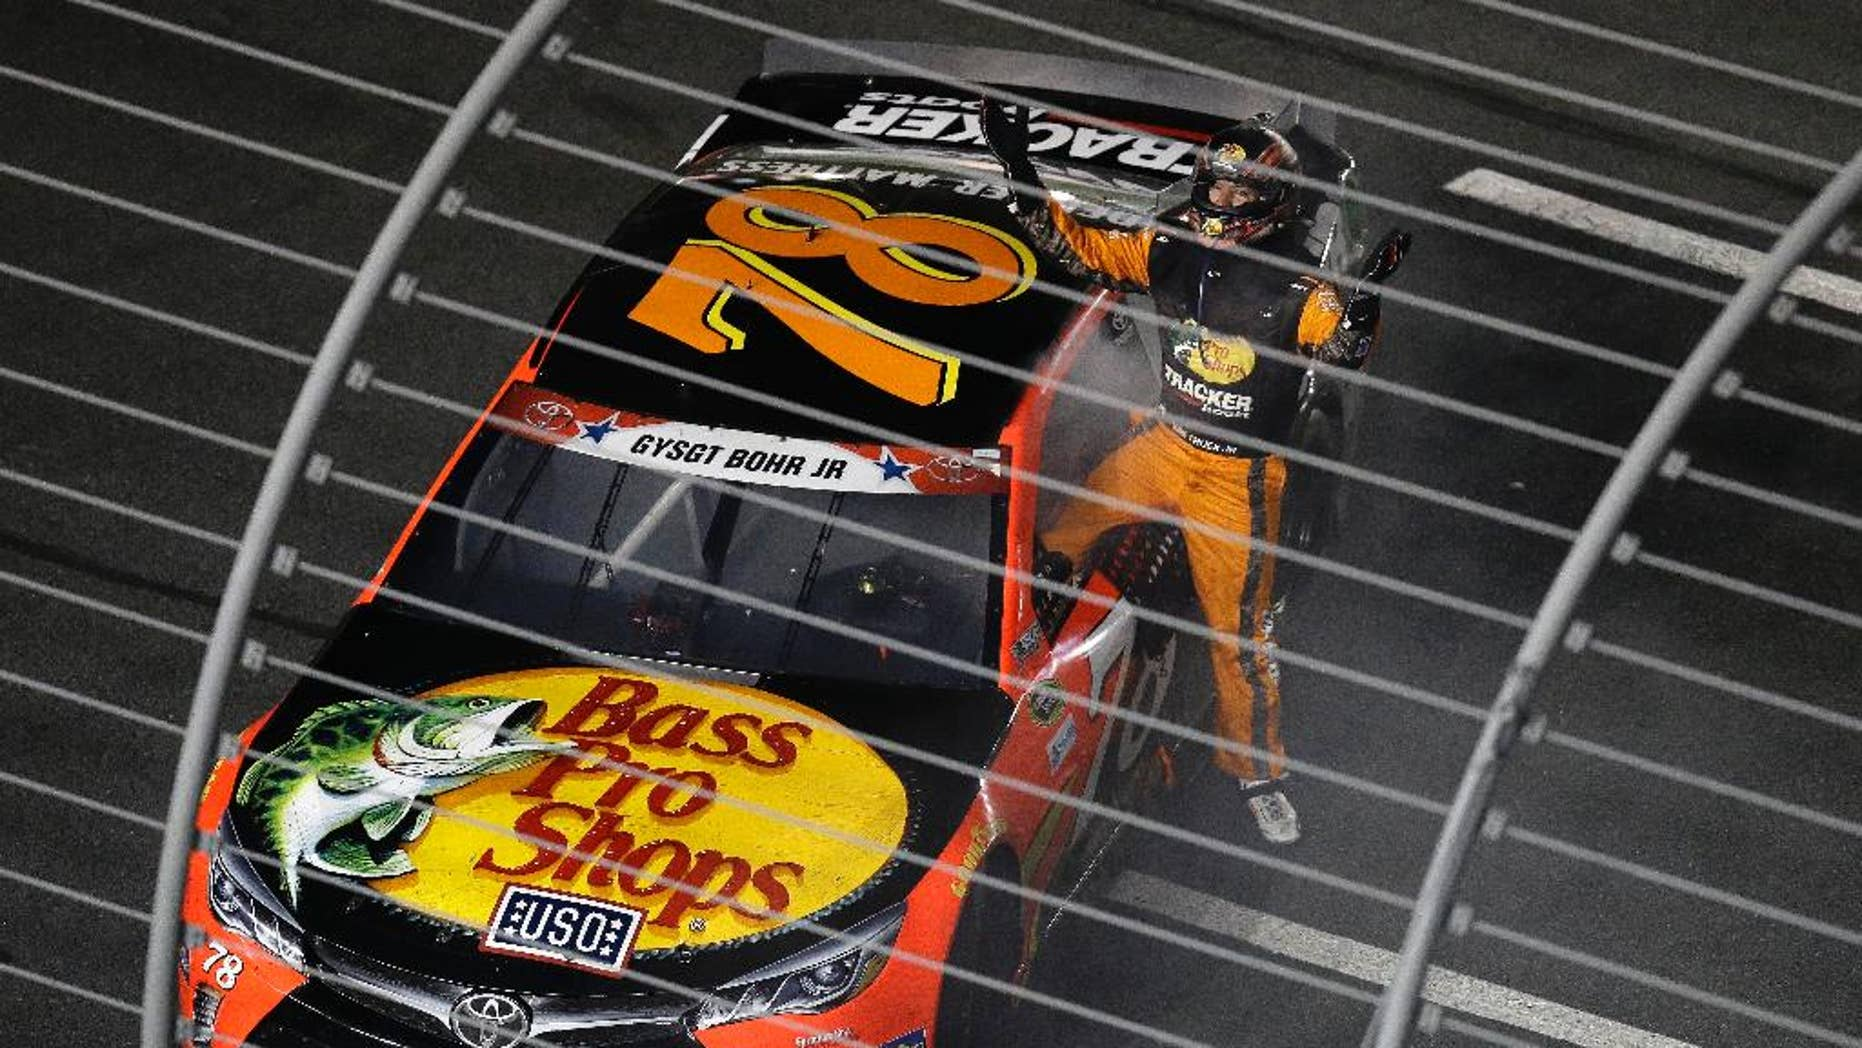 Martin Truex Jr. (78) celebrates after winning the NASCAR Sprint Cup Series auto race at the Charlotte Motor Speedway in Concord, N.C., Sunday, May 29, 2016. (AP Photo/Gerry Broome)